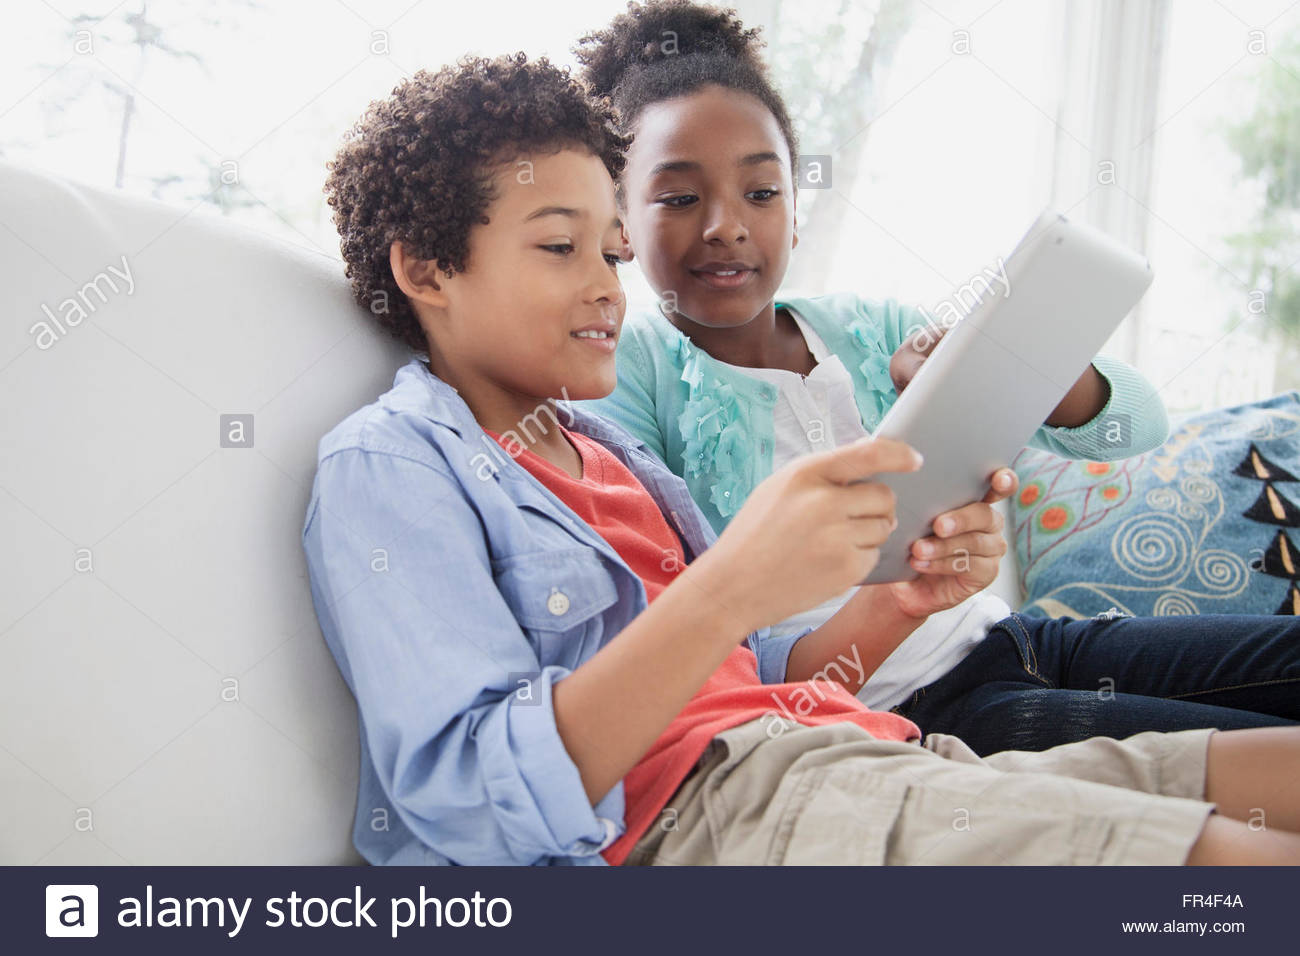 preteen brother and sister playing on pc tablet together - Stock Image